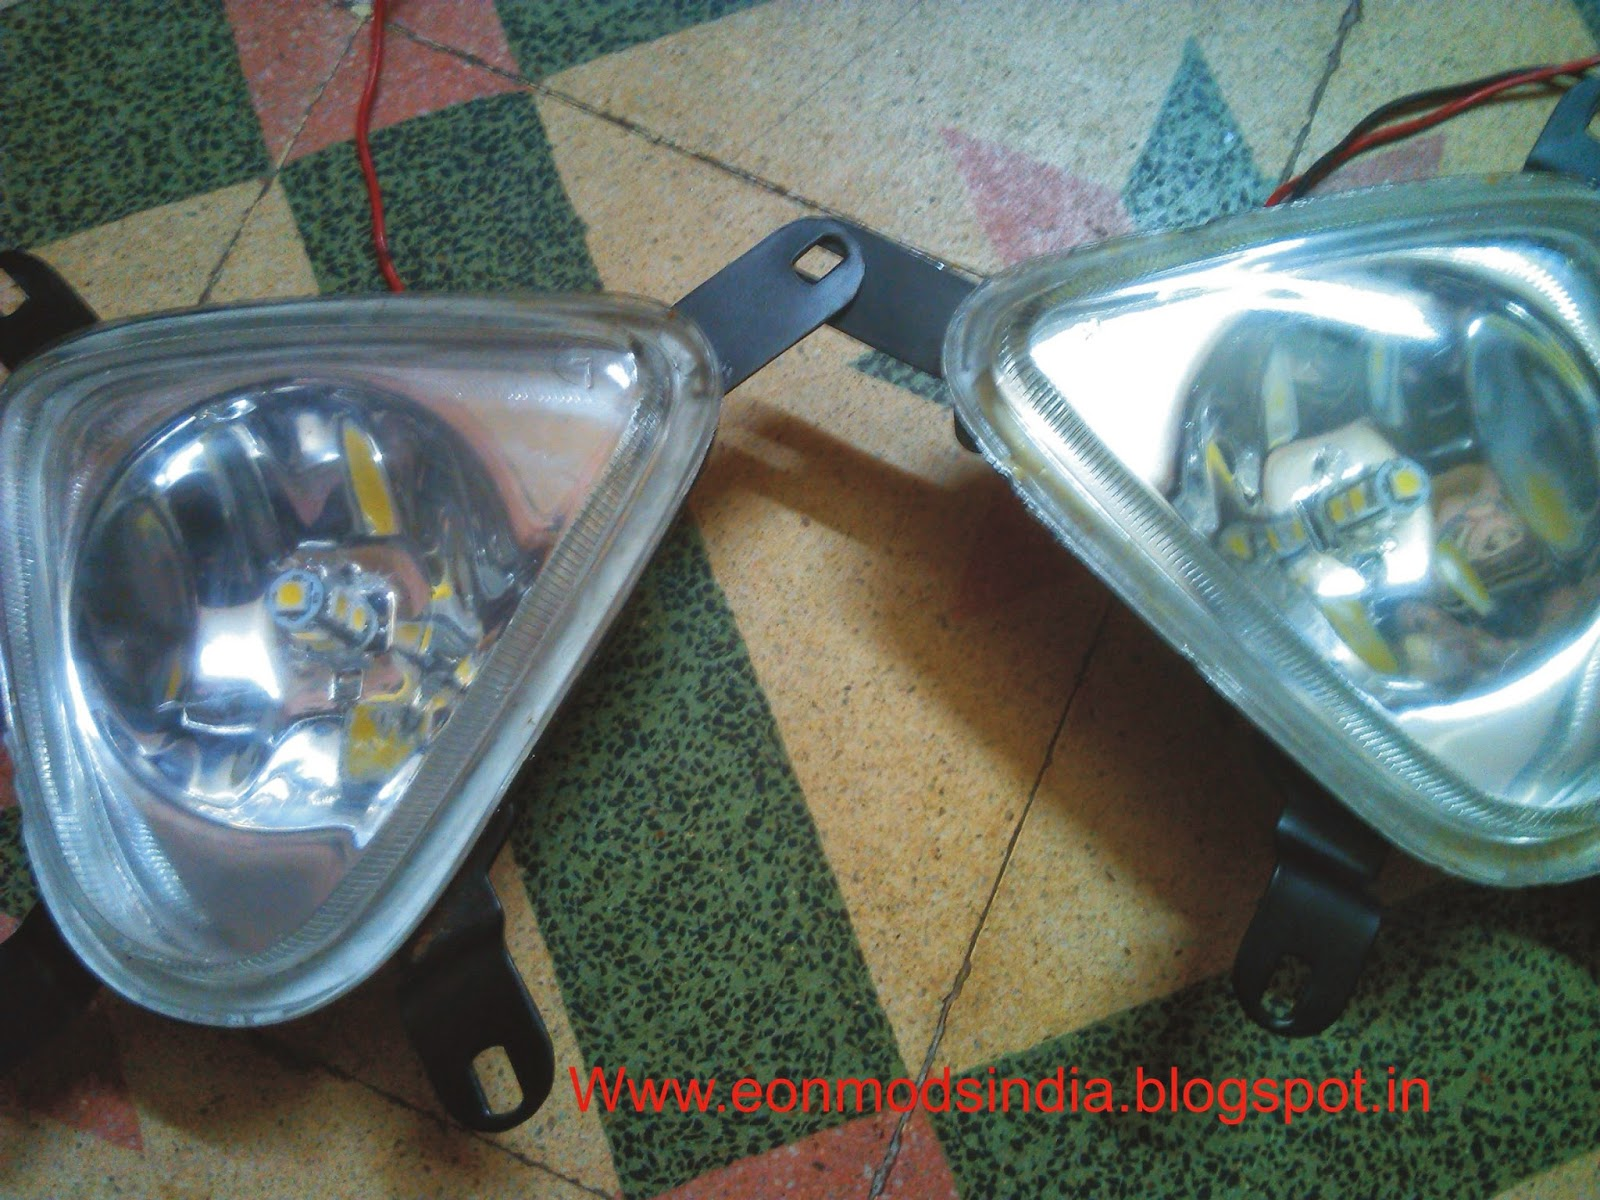 Hyundai Eon Modifications Installing Fog Lamps To How Wire Cutting Of The Slot For